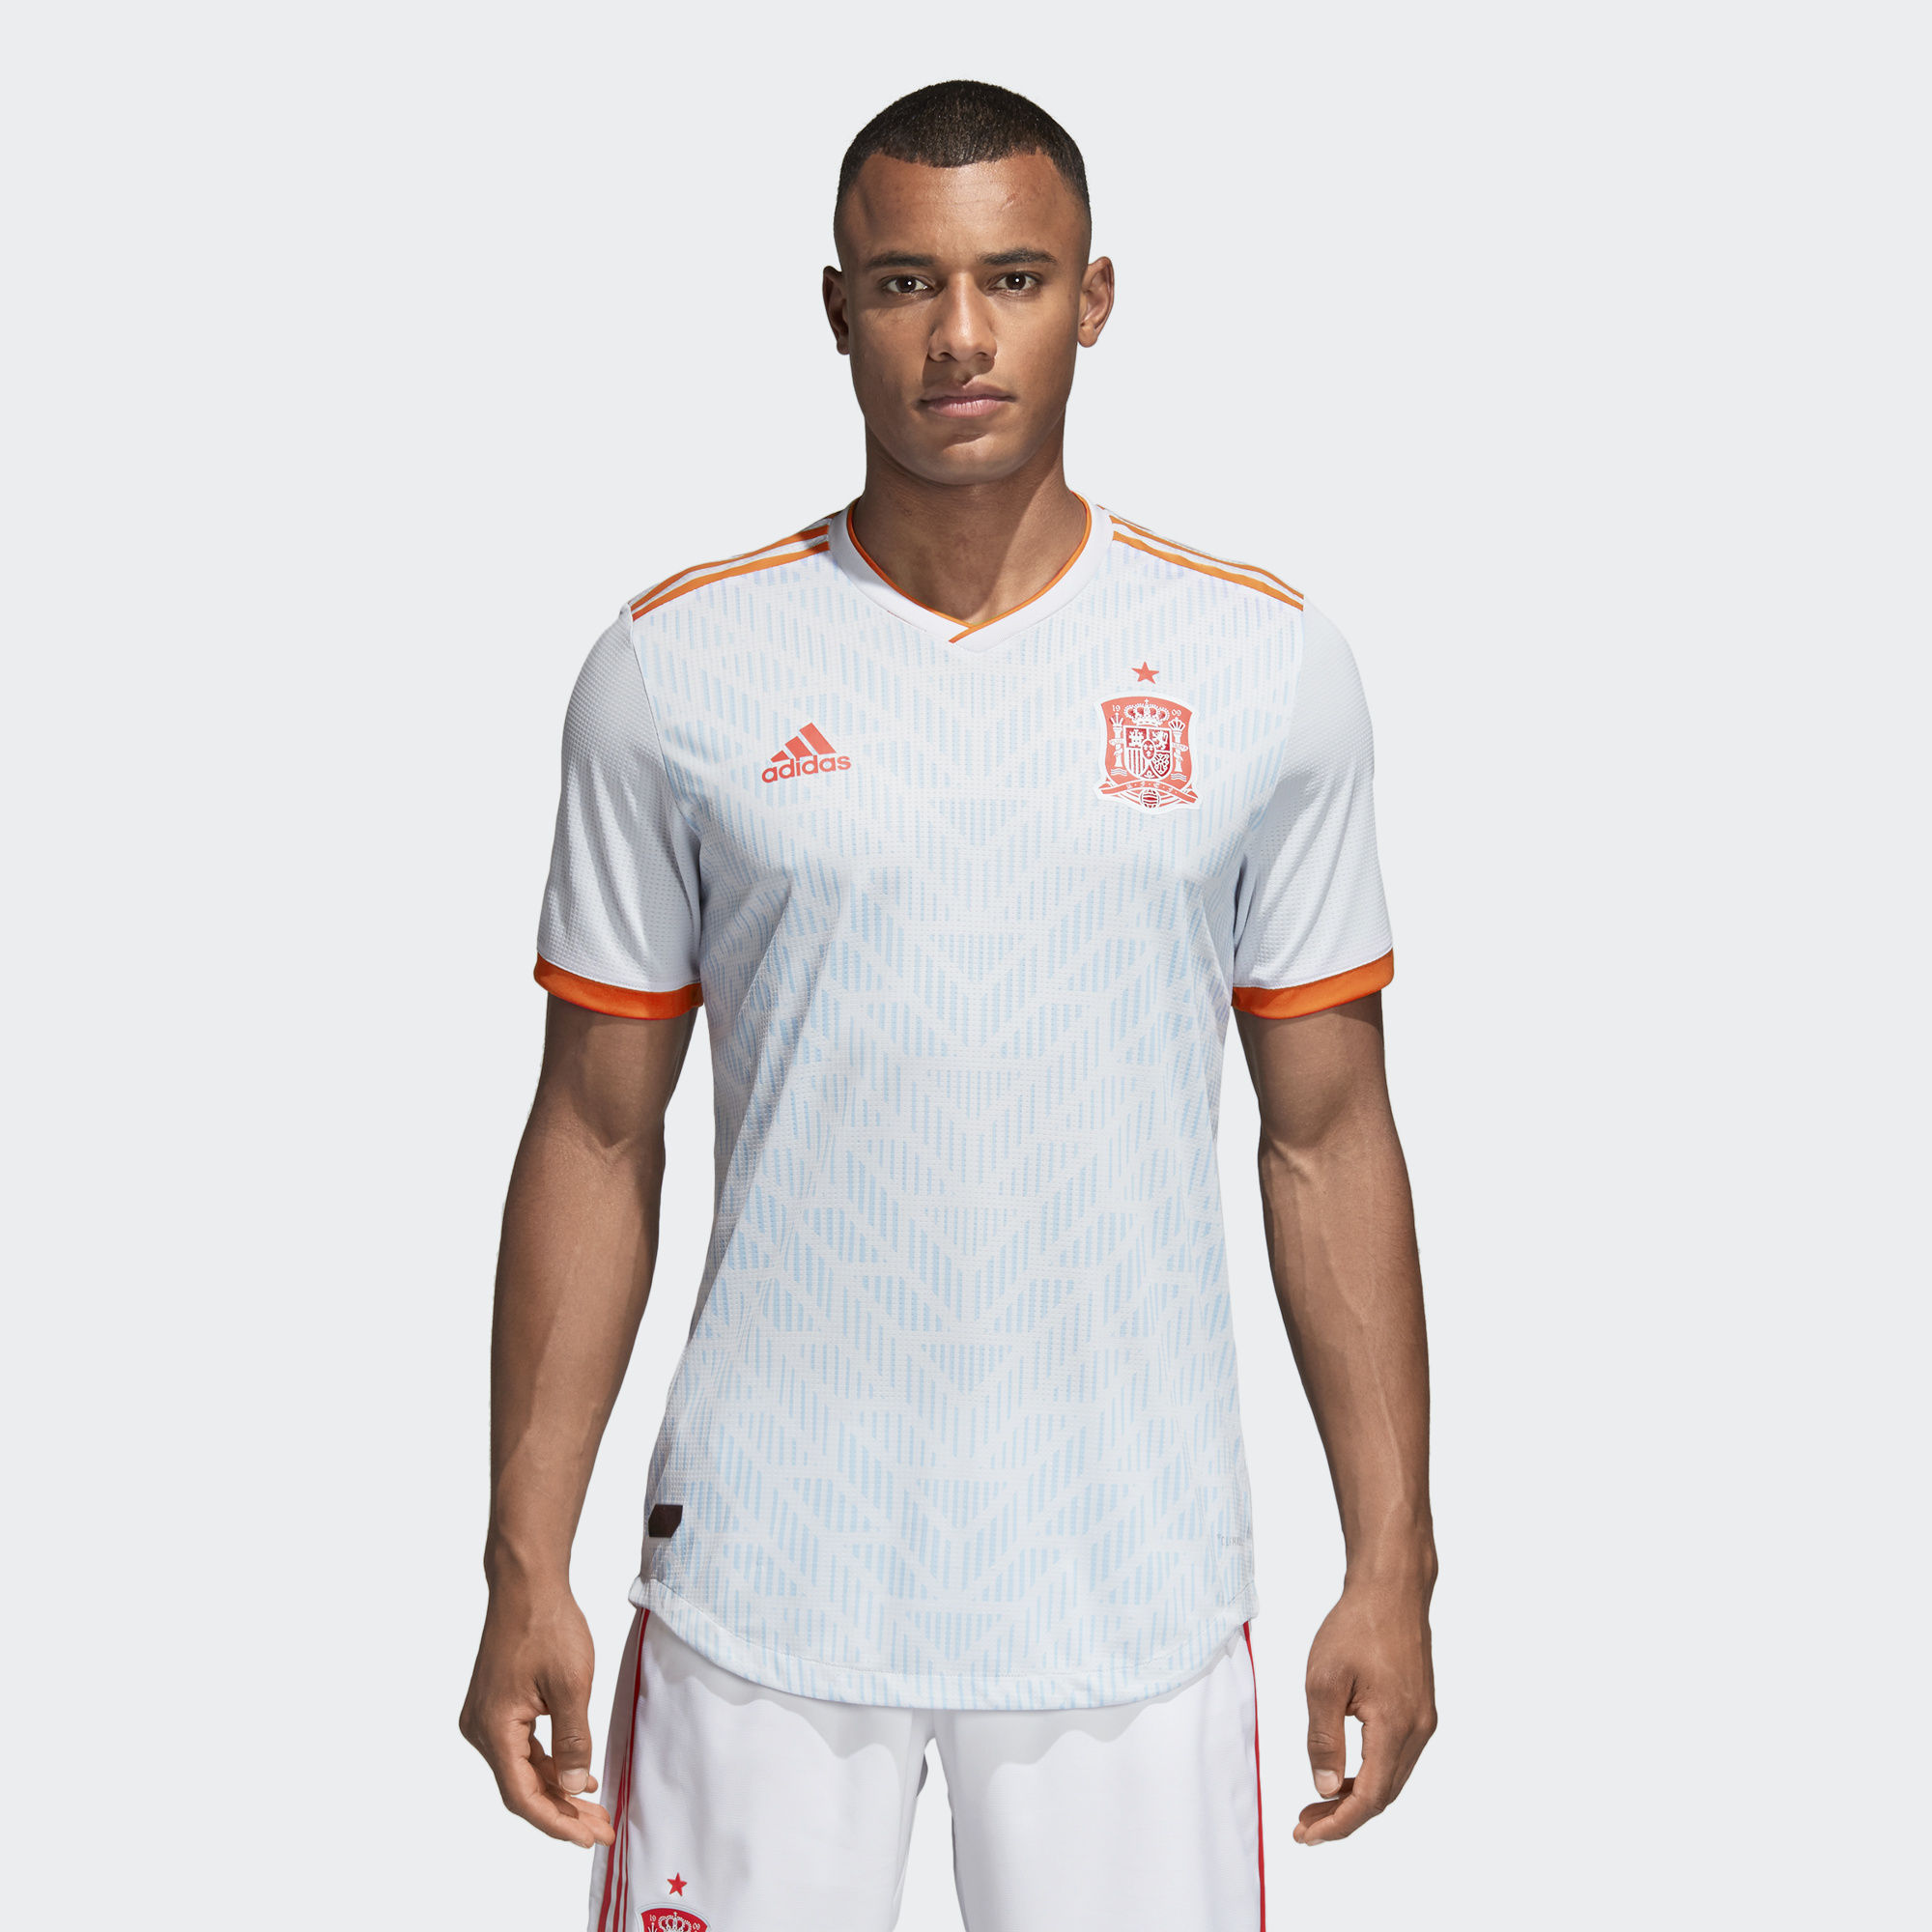 low priced a4727 d7671 Spain 2018 World Cup Adidas Away Kit | 17/18 Kits | Football ...